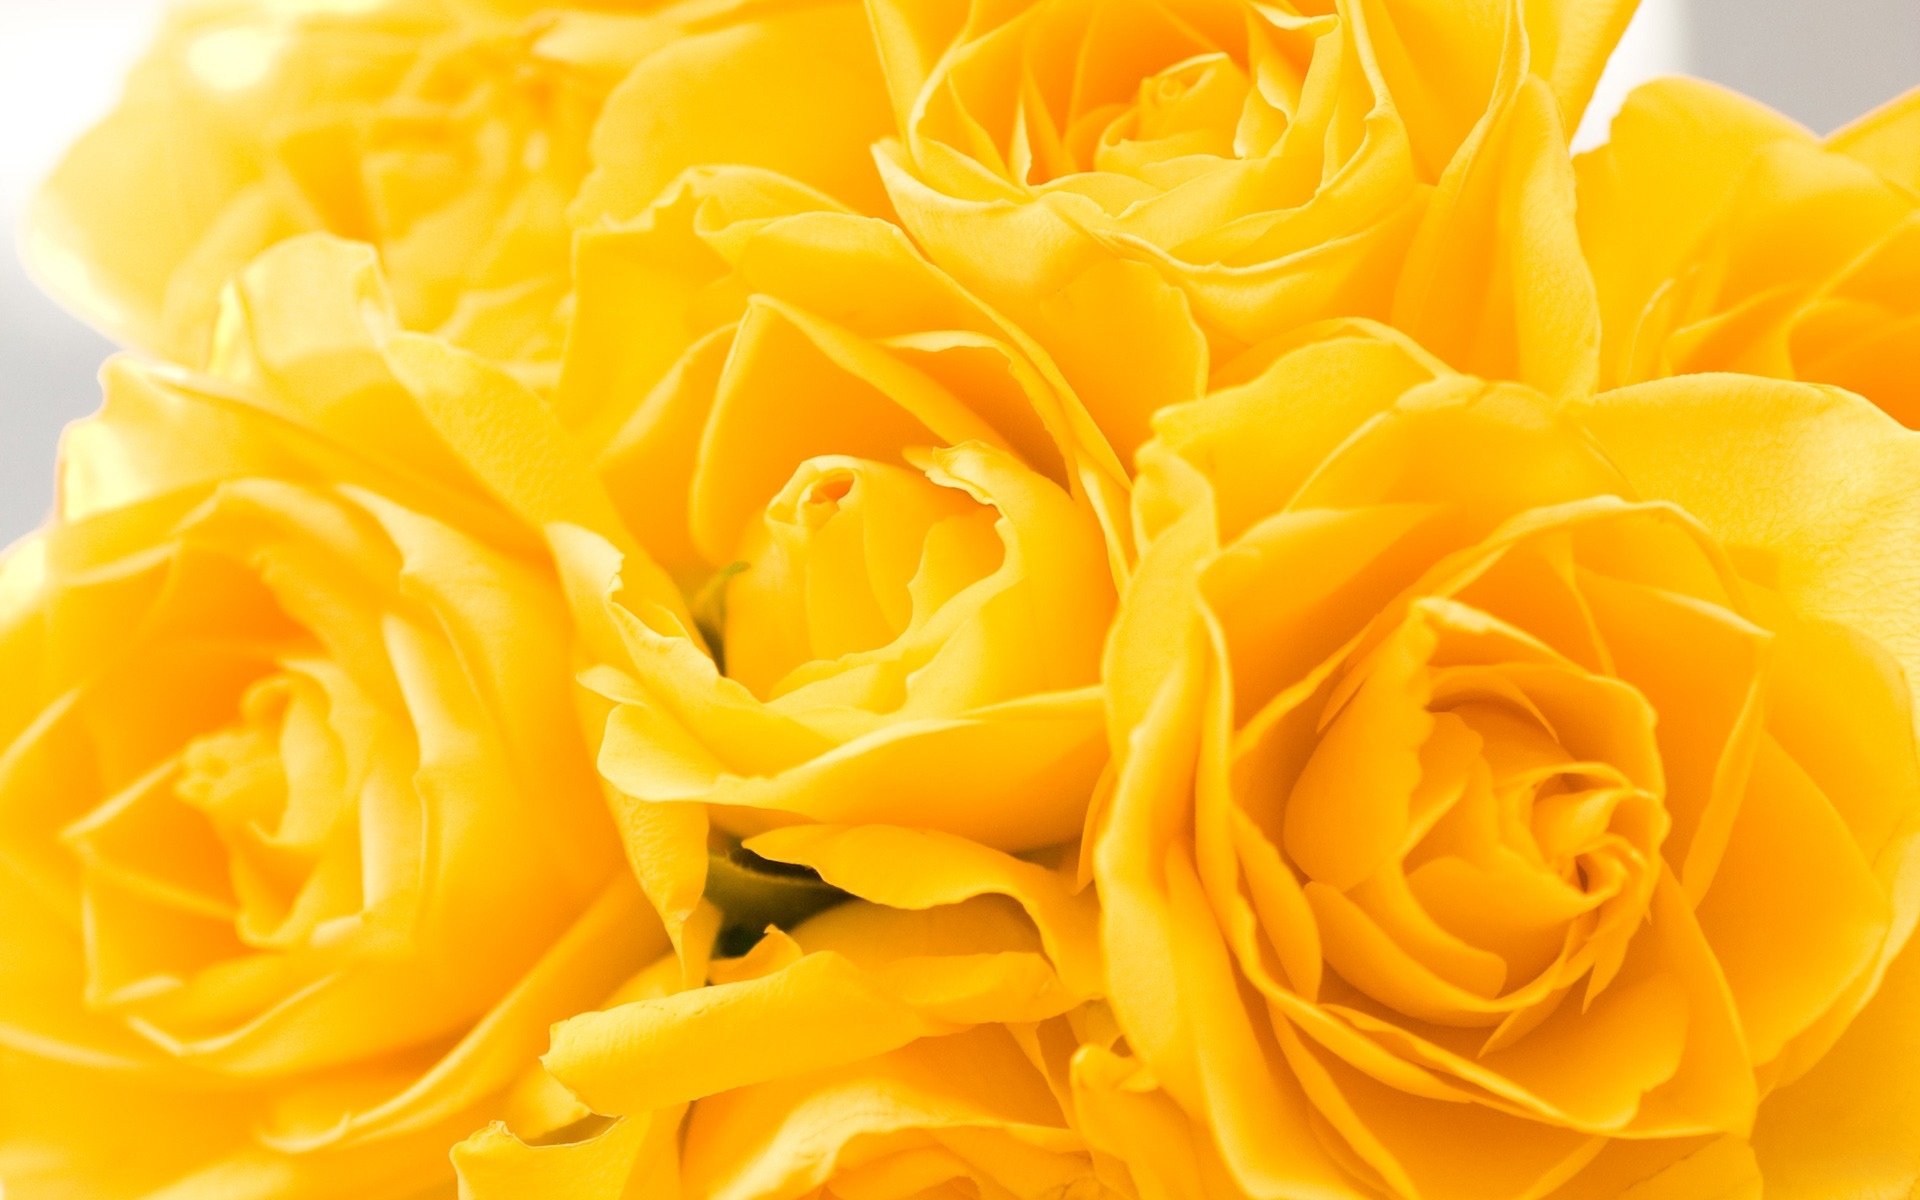 wallpaper of yellow roses - photo #14